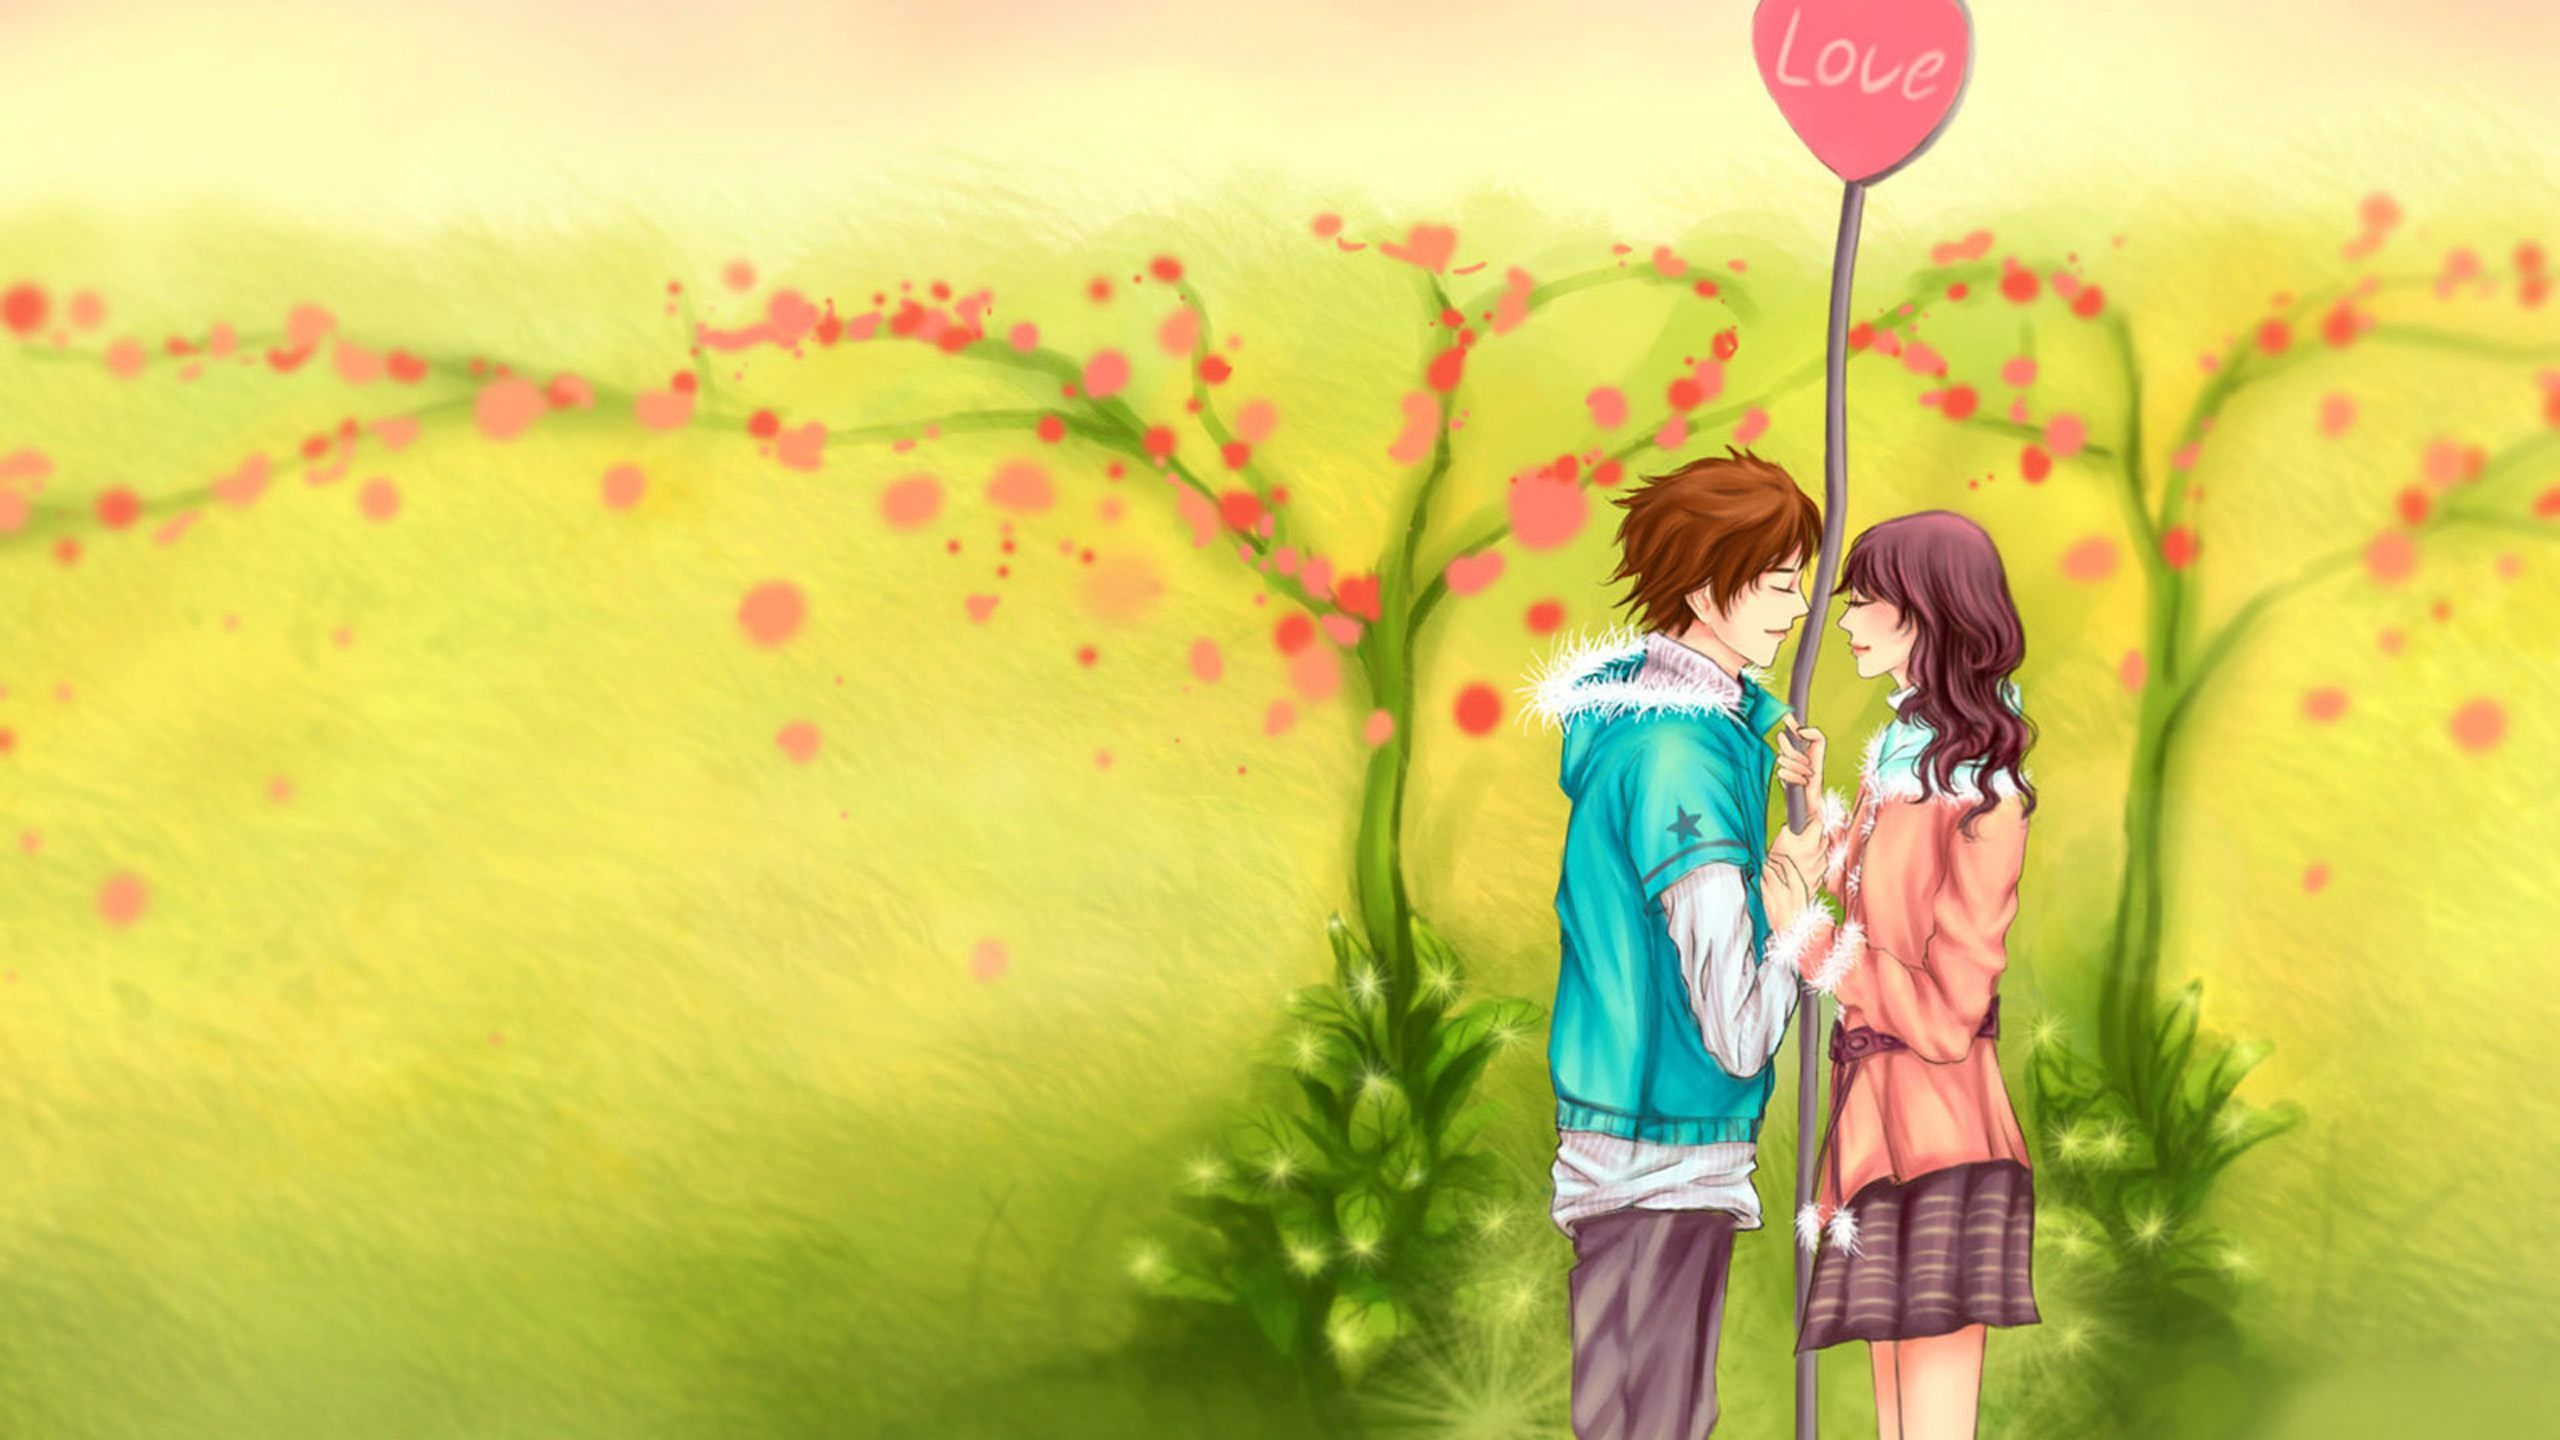 Cute HD Love Wallpapers for Valentine Day DesignsLayer